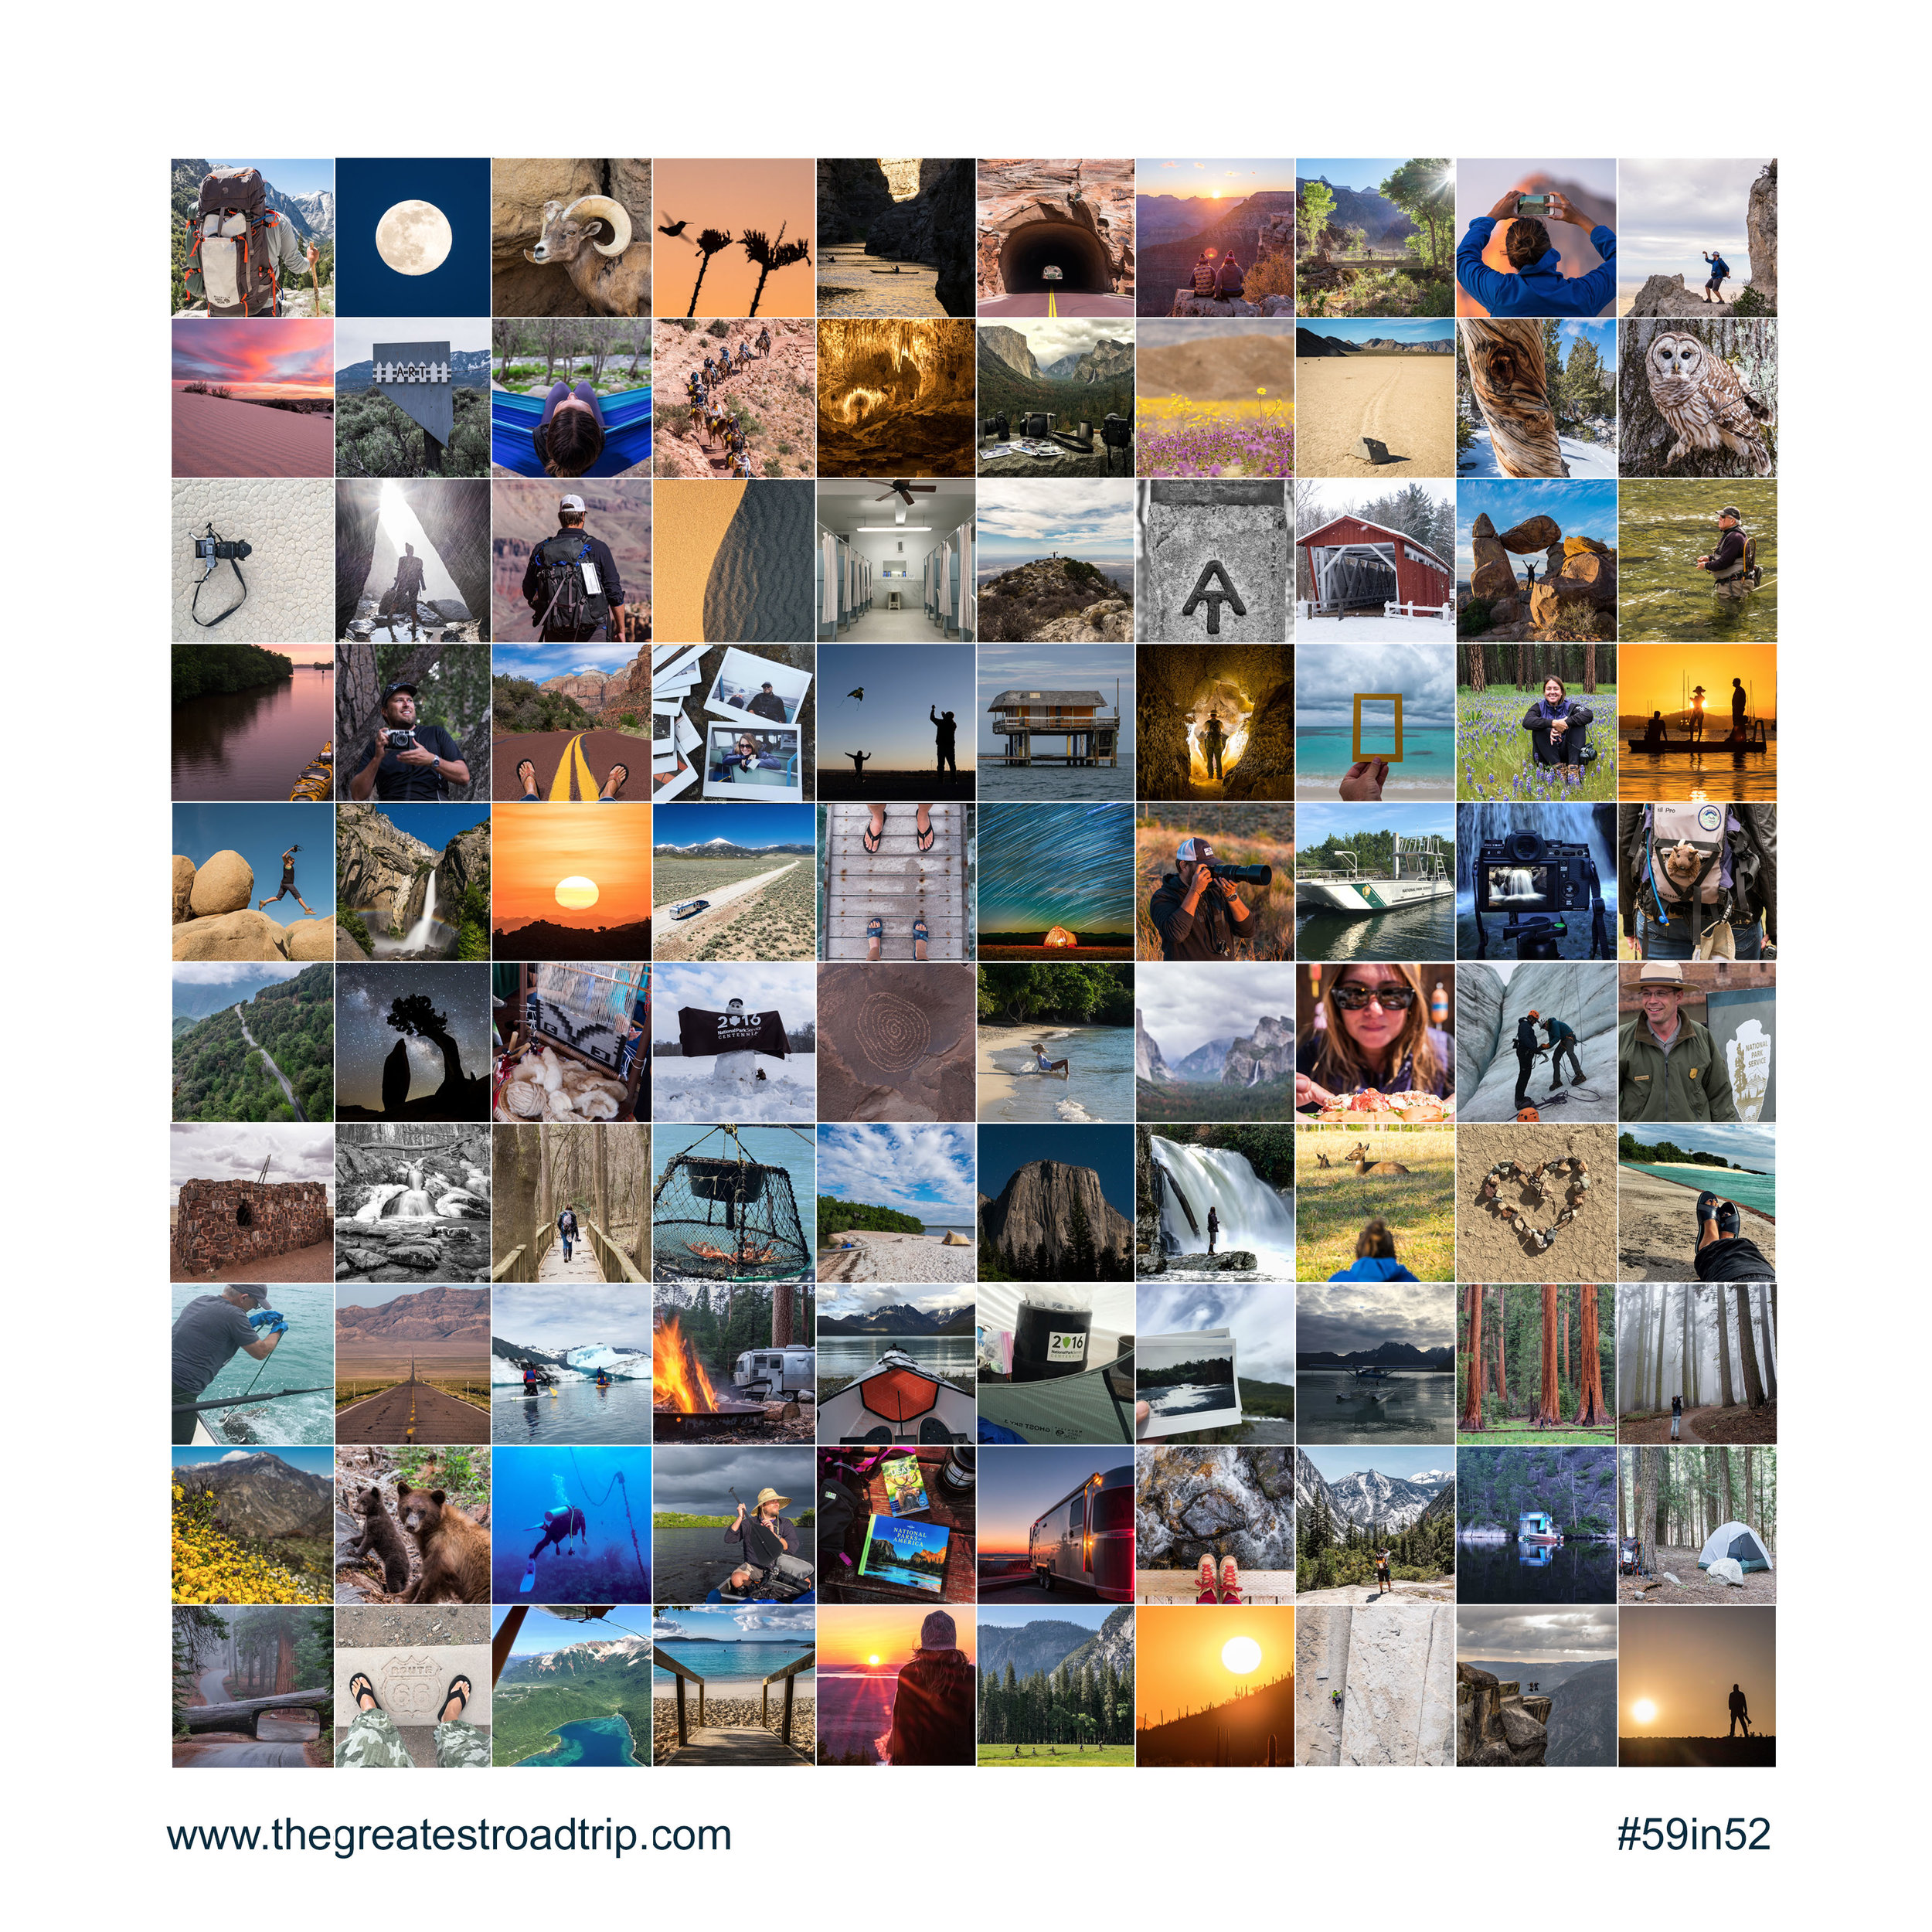 A sample of 100 experiences we've had in 37 national parks this year...ordered below as can be seen line by line, left to right.